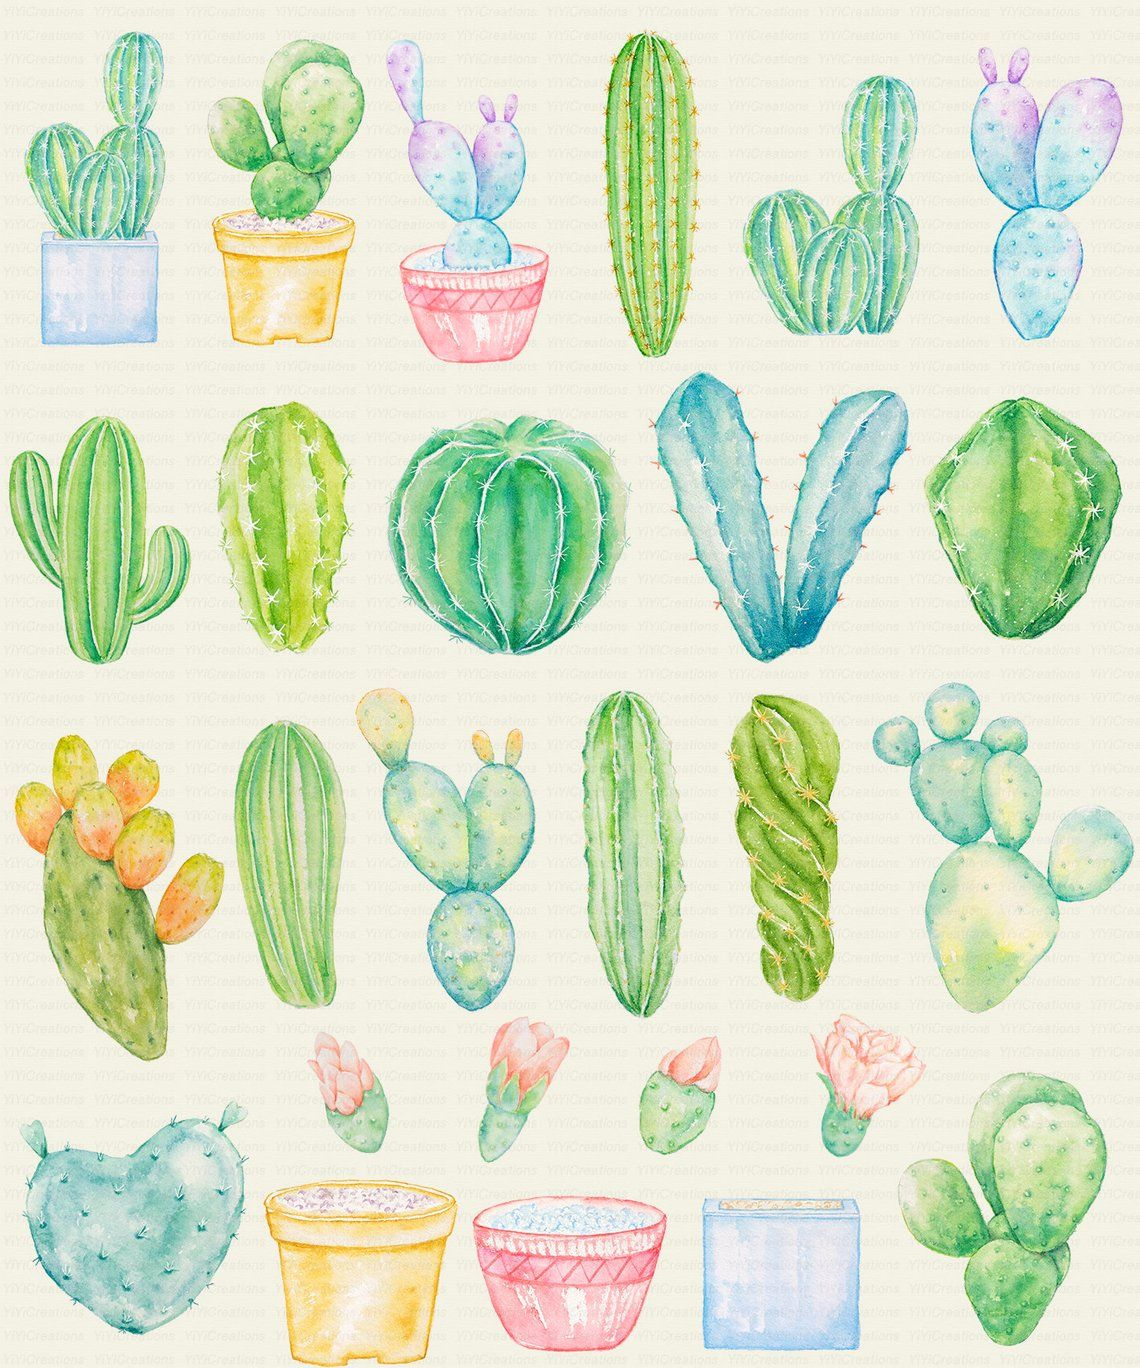 Cactus clipart border image freeuse stock Watercolor Greenish Cactus Clipart, Cacti Border Design, Tropical ... image freeuse stock